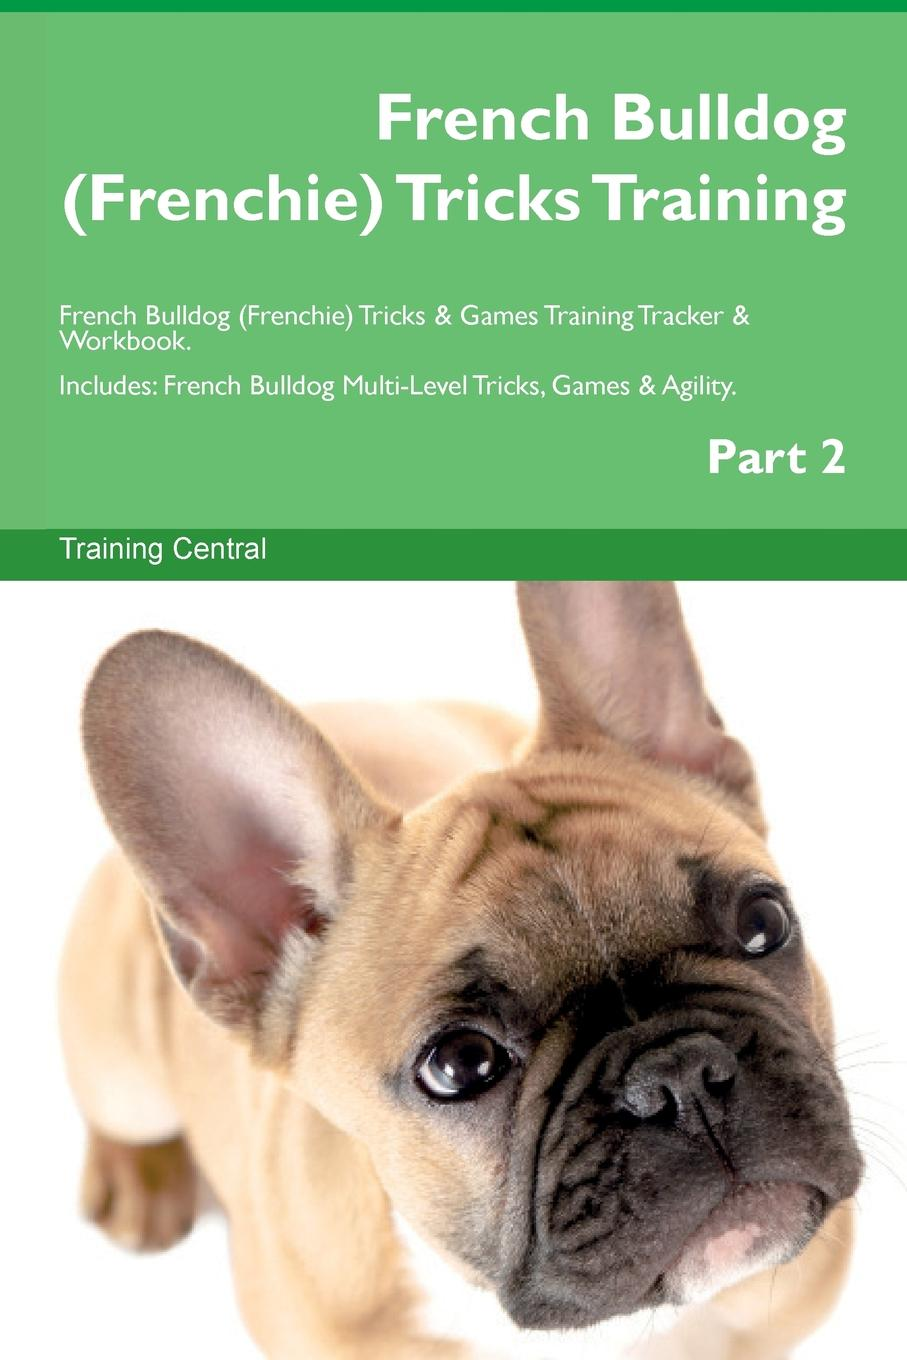 Training Central French Bulldog (Frenchie) Tricks Training French Bulldog (Frenchie) Tricks . Games Training Tracker . Workbook. Includes. French Bulldog Multi-Level Tricks, Games . Agility. Part 2 this book loves you